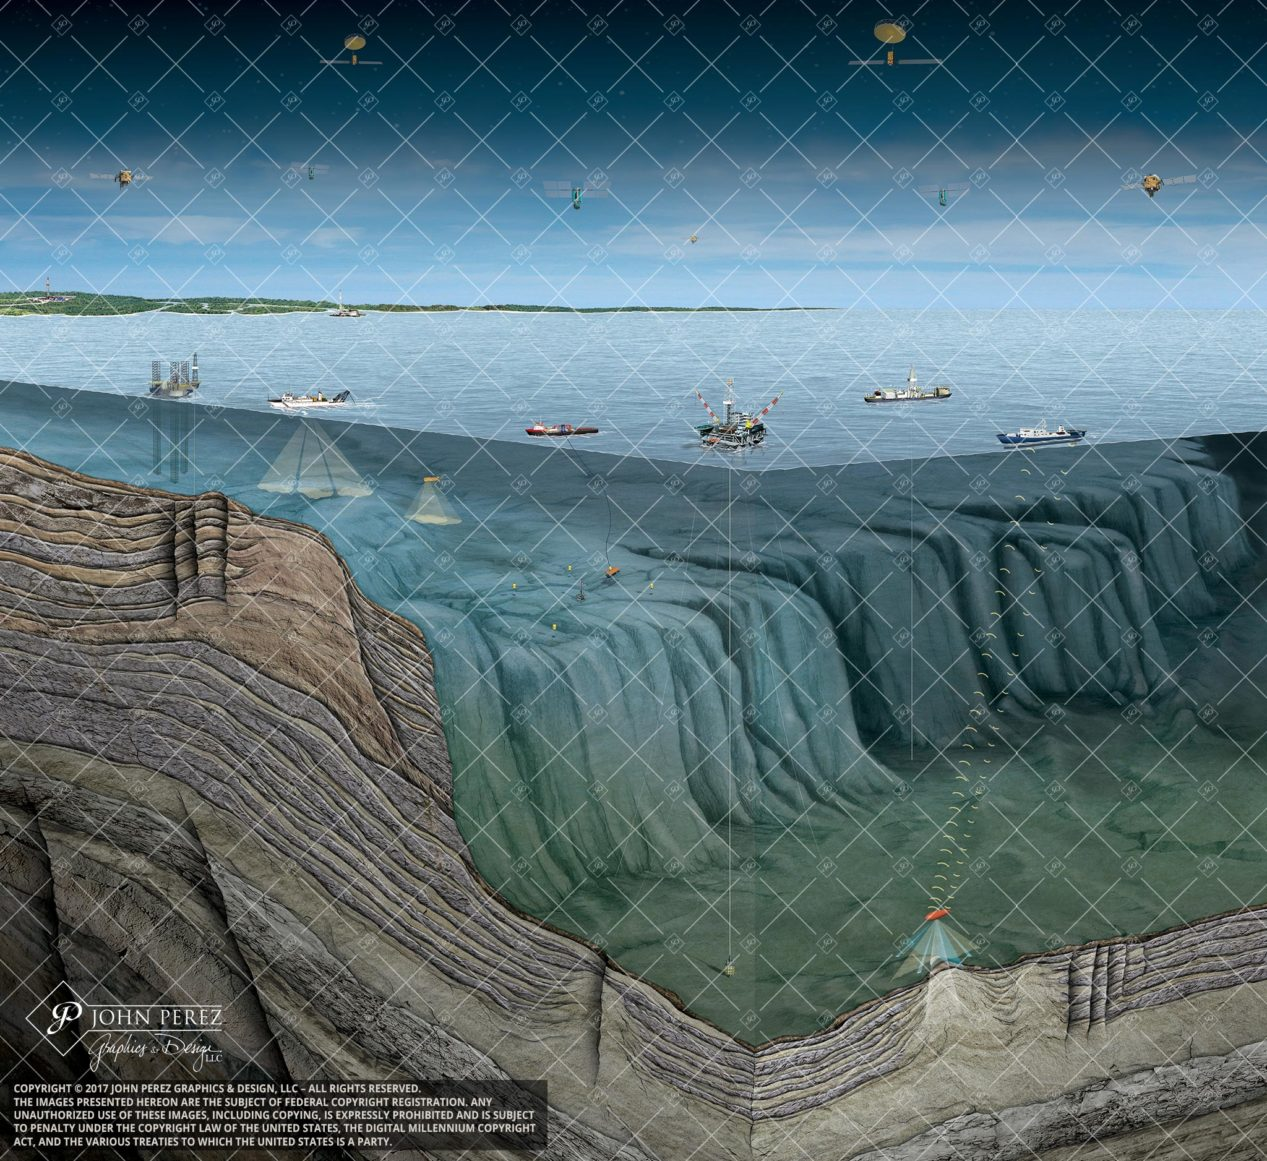 Offshore Technologies Oil Gas Illustration, John Perez Graphics, OS32, offshore drilling, geology illustration